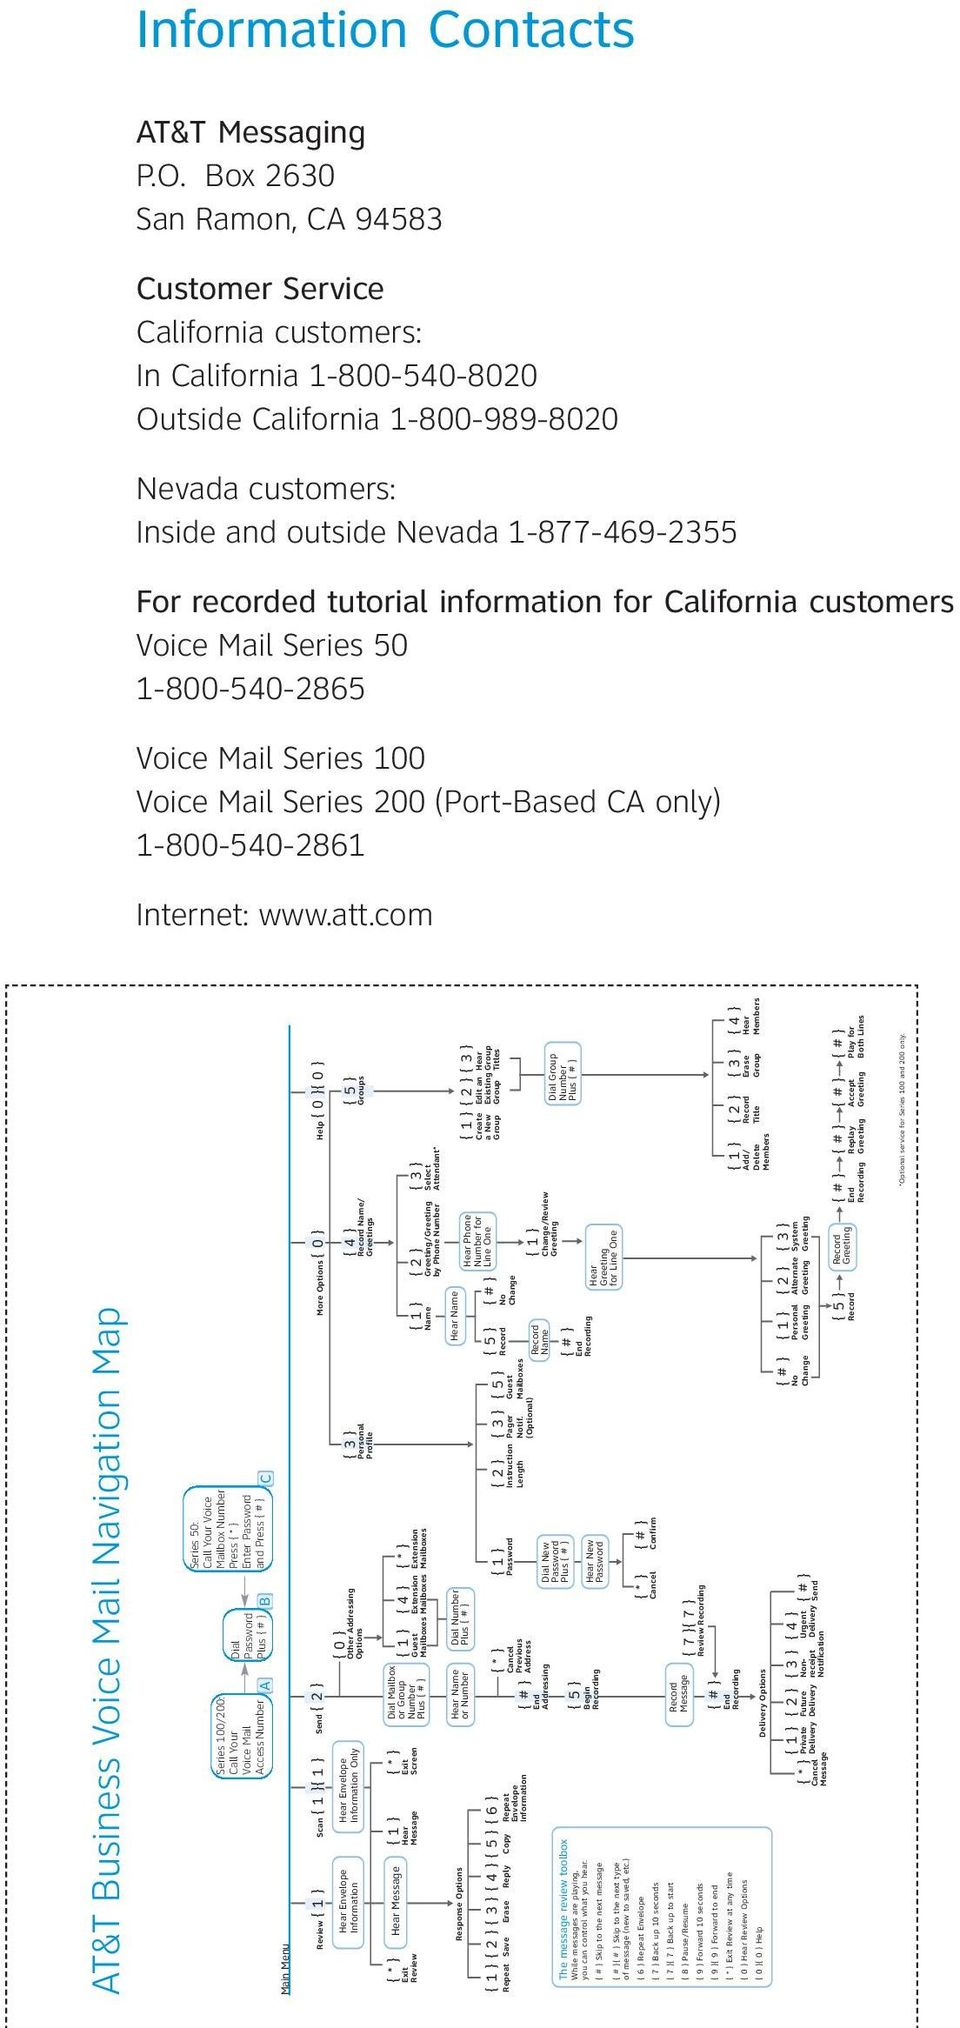 recorded tutorial information for California customers Voice Mail Series 50 1-800-540-2865 Voice Mail Series 100 Voice Mail Series 200 (Port-Based CA only) 1-800-540-2861 Internet: www.att.